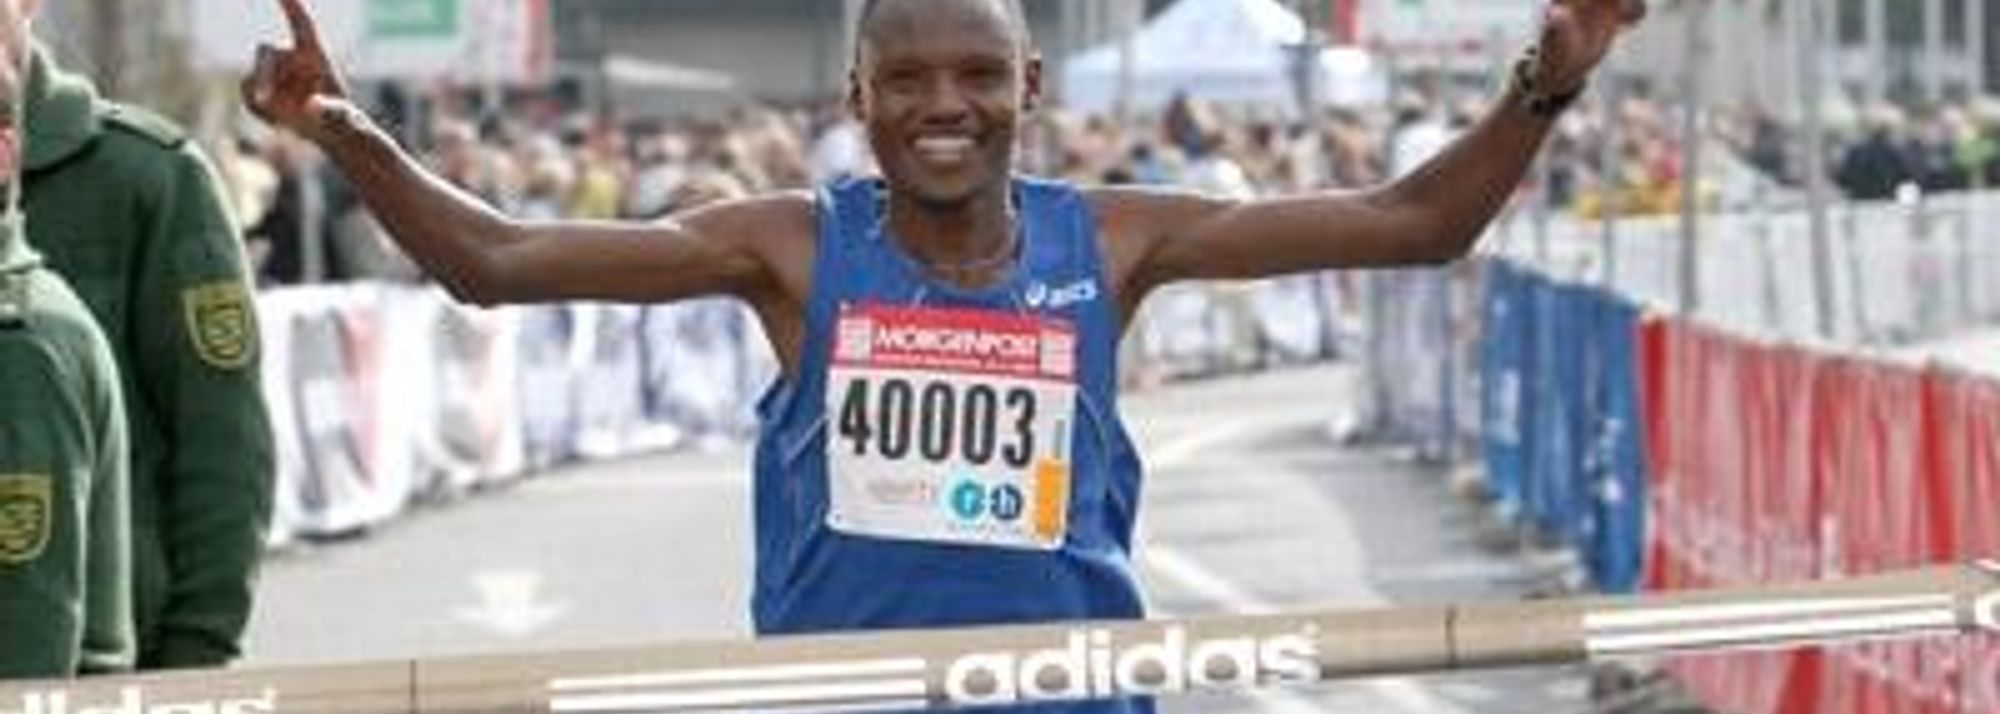 marathon, world silver medallist Phaustin Baha Sulle of Tanzania has two goals: the world title and the world best mark.